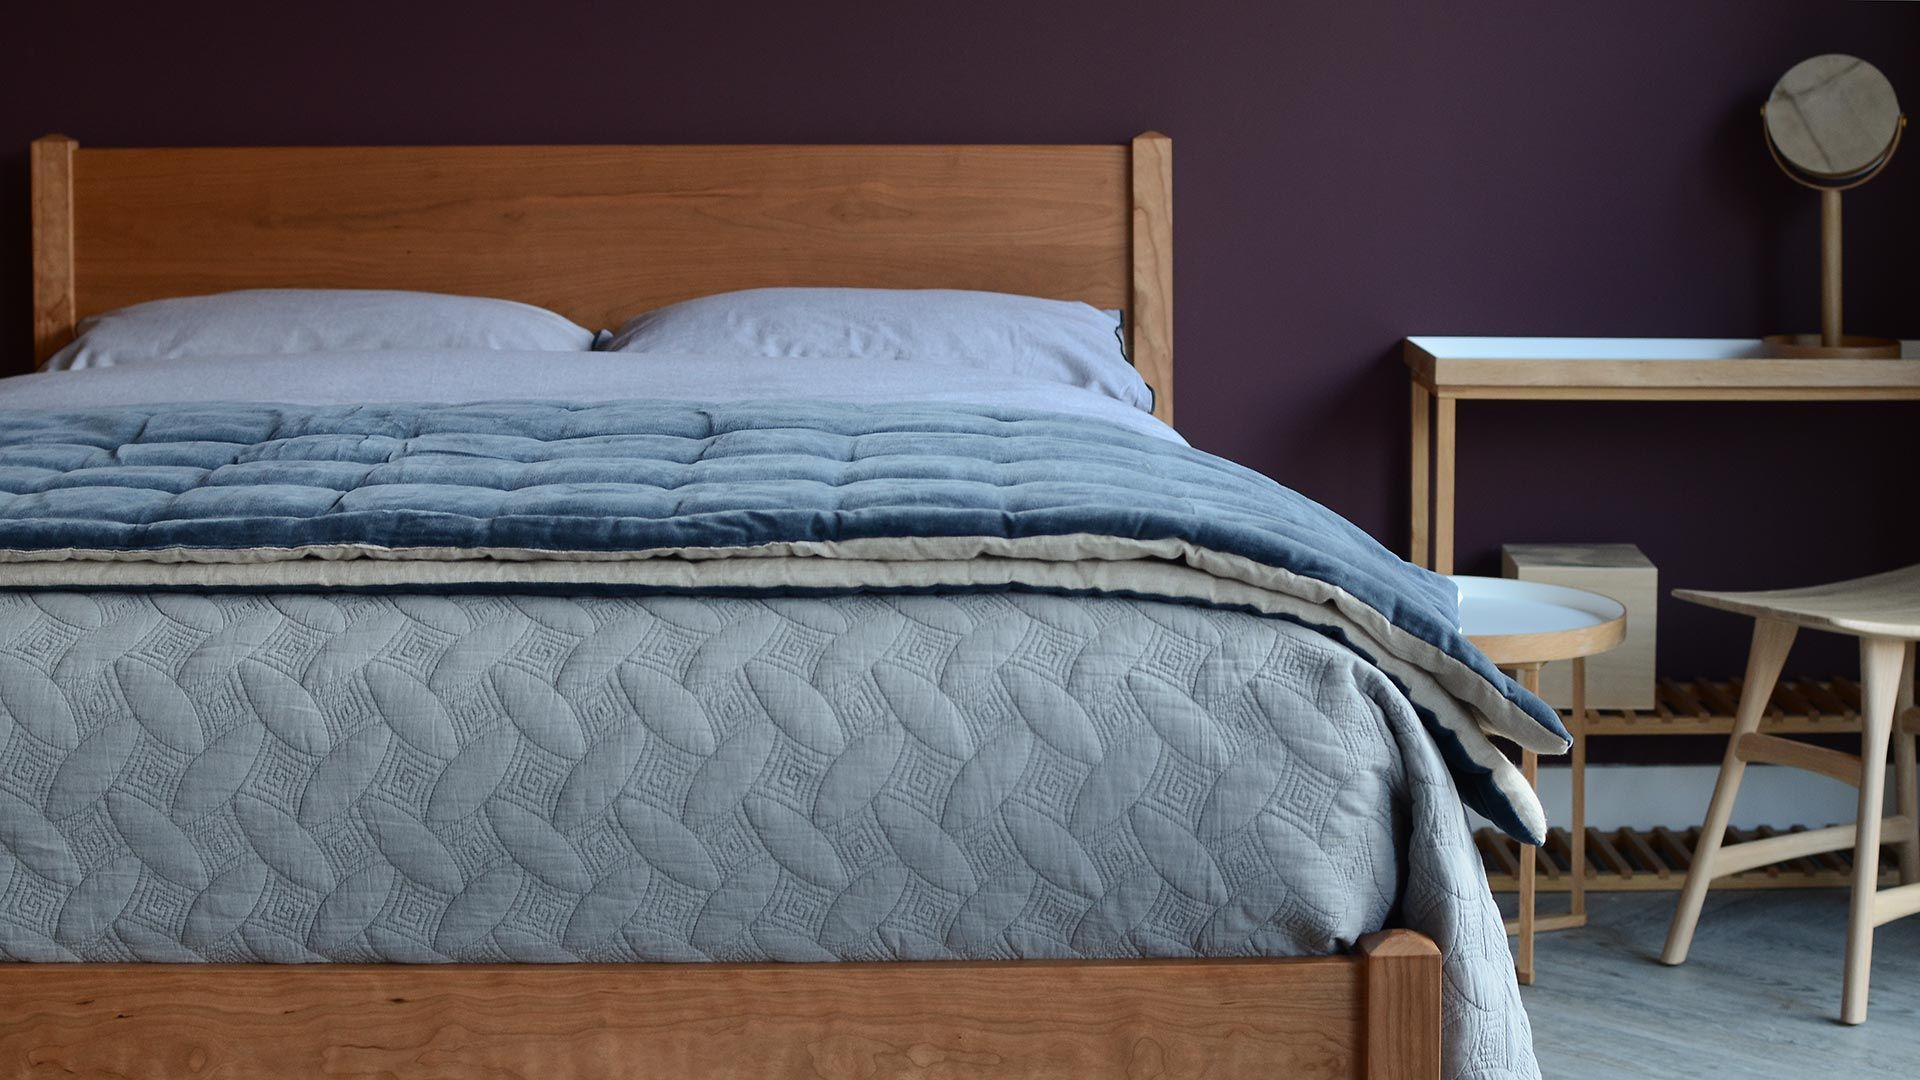 The Lifestyle Collection Of Chambray Cotton Bedding Is Made Up Duvet Covers And Pillowcase Pairs